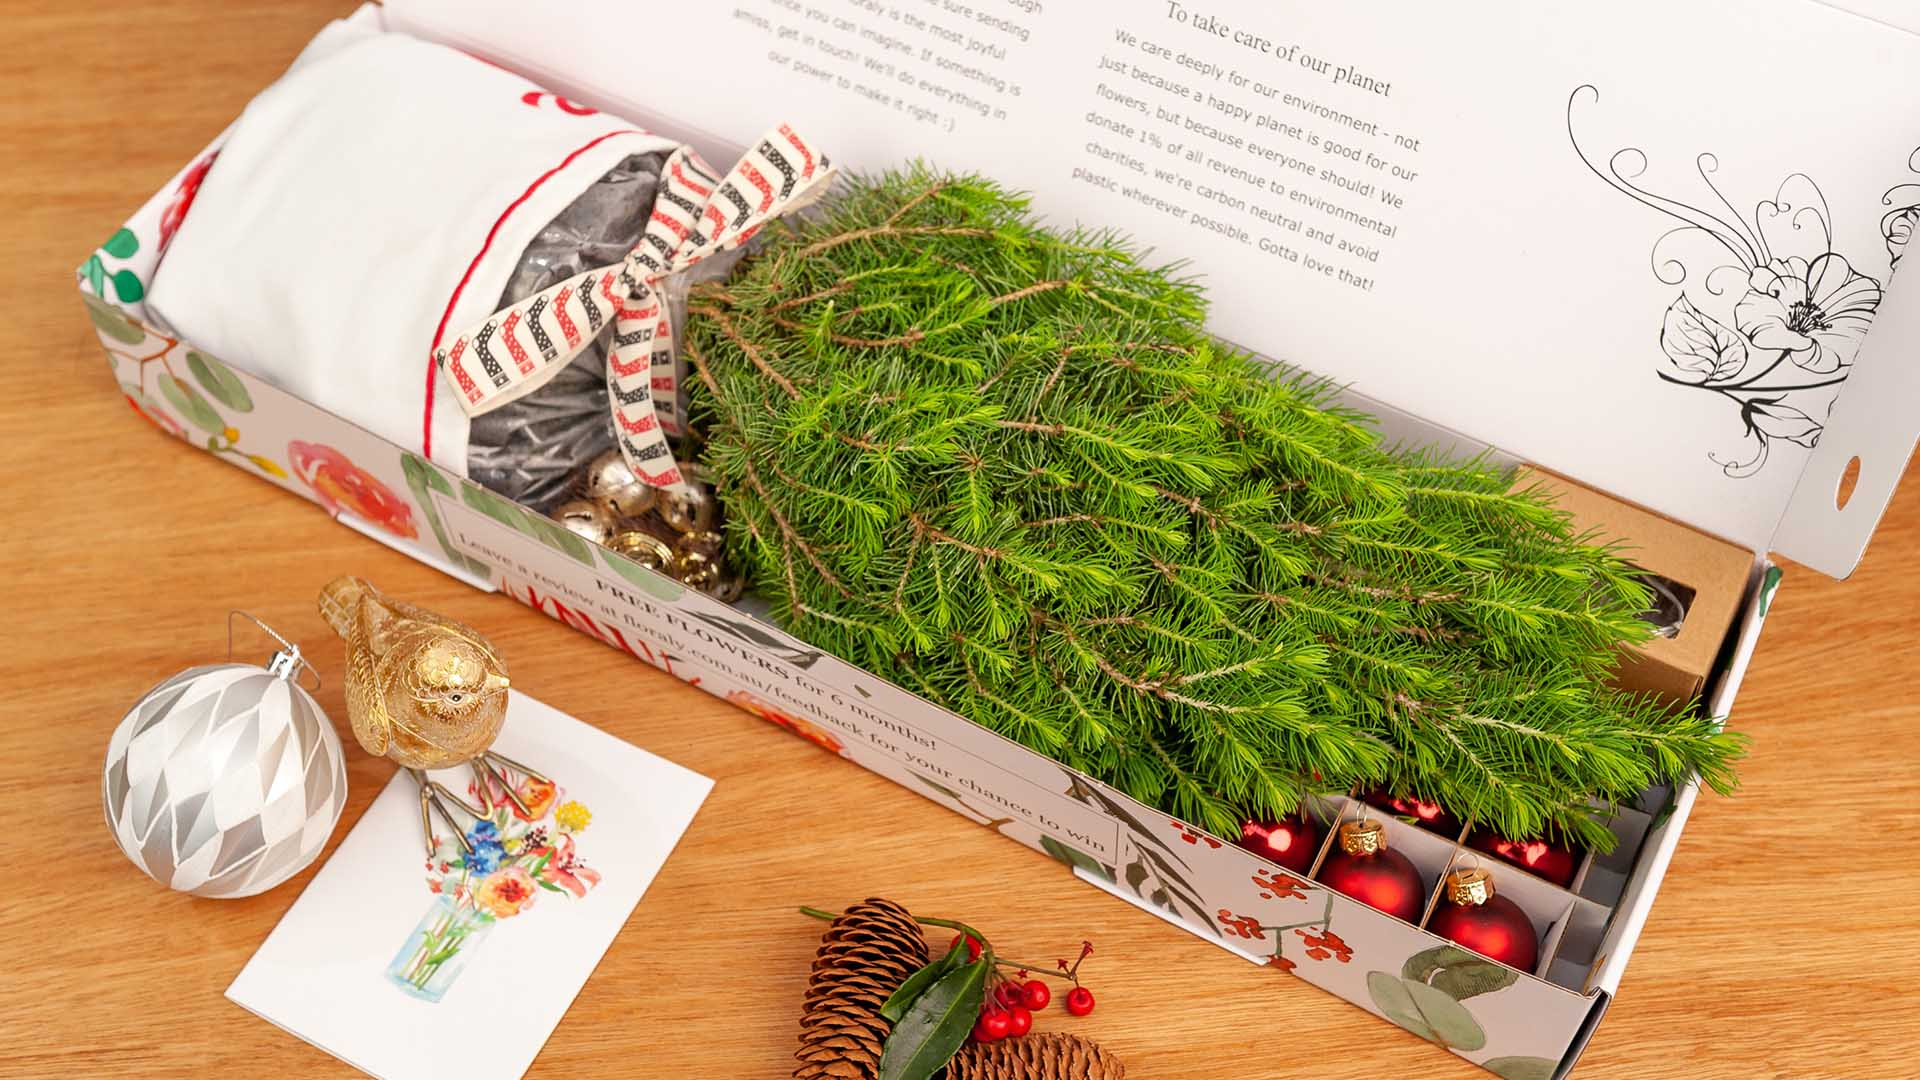 You Can Now Get Tiny Living Christmas Trees Delivered To